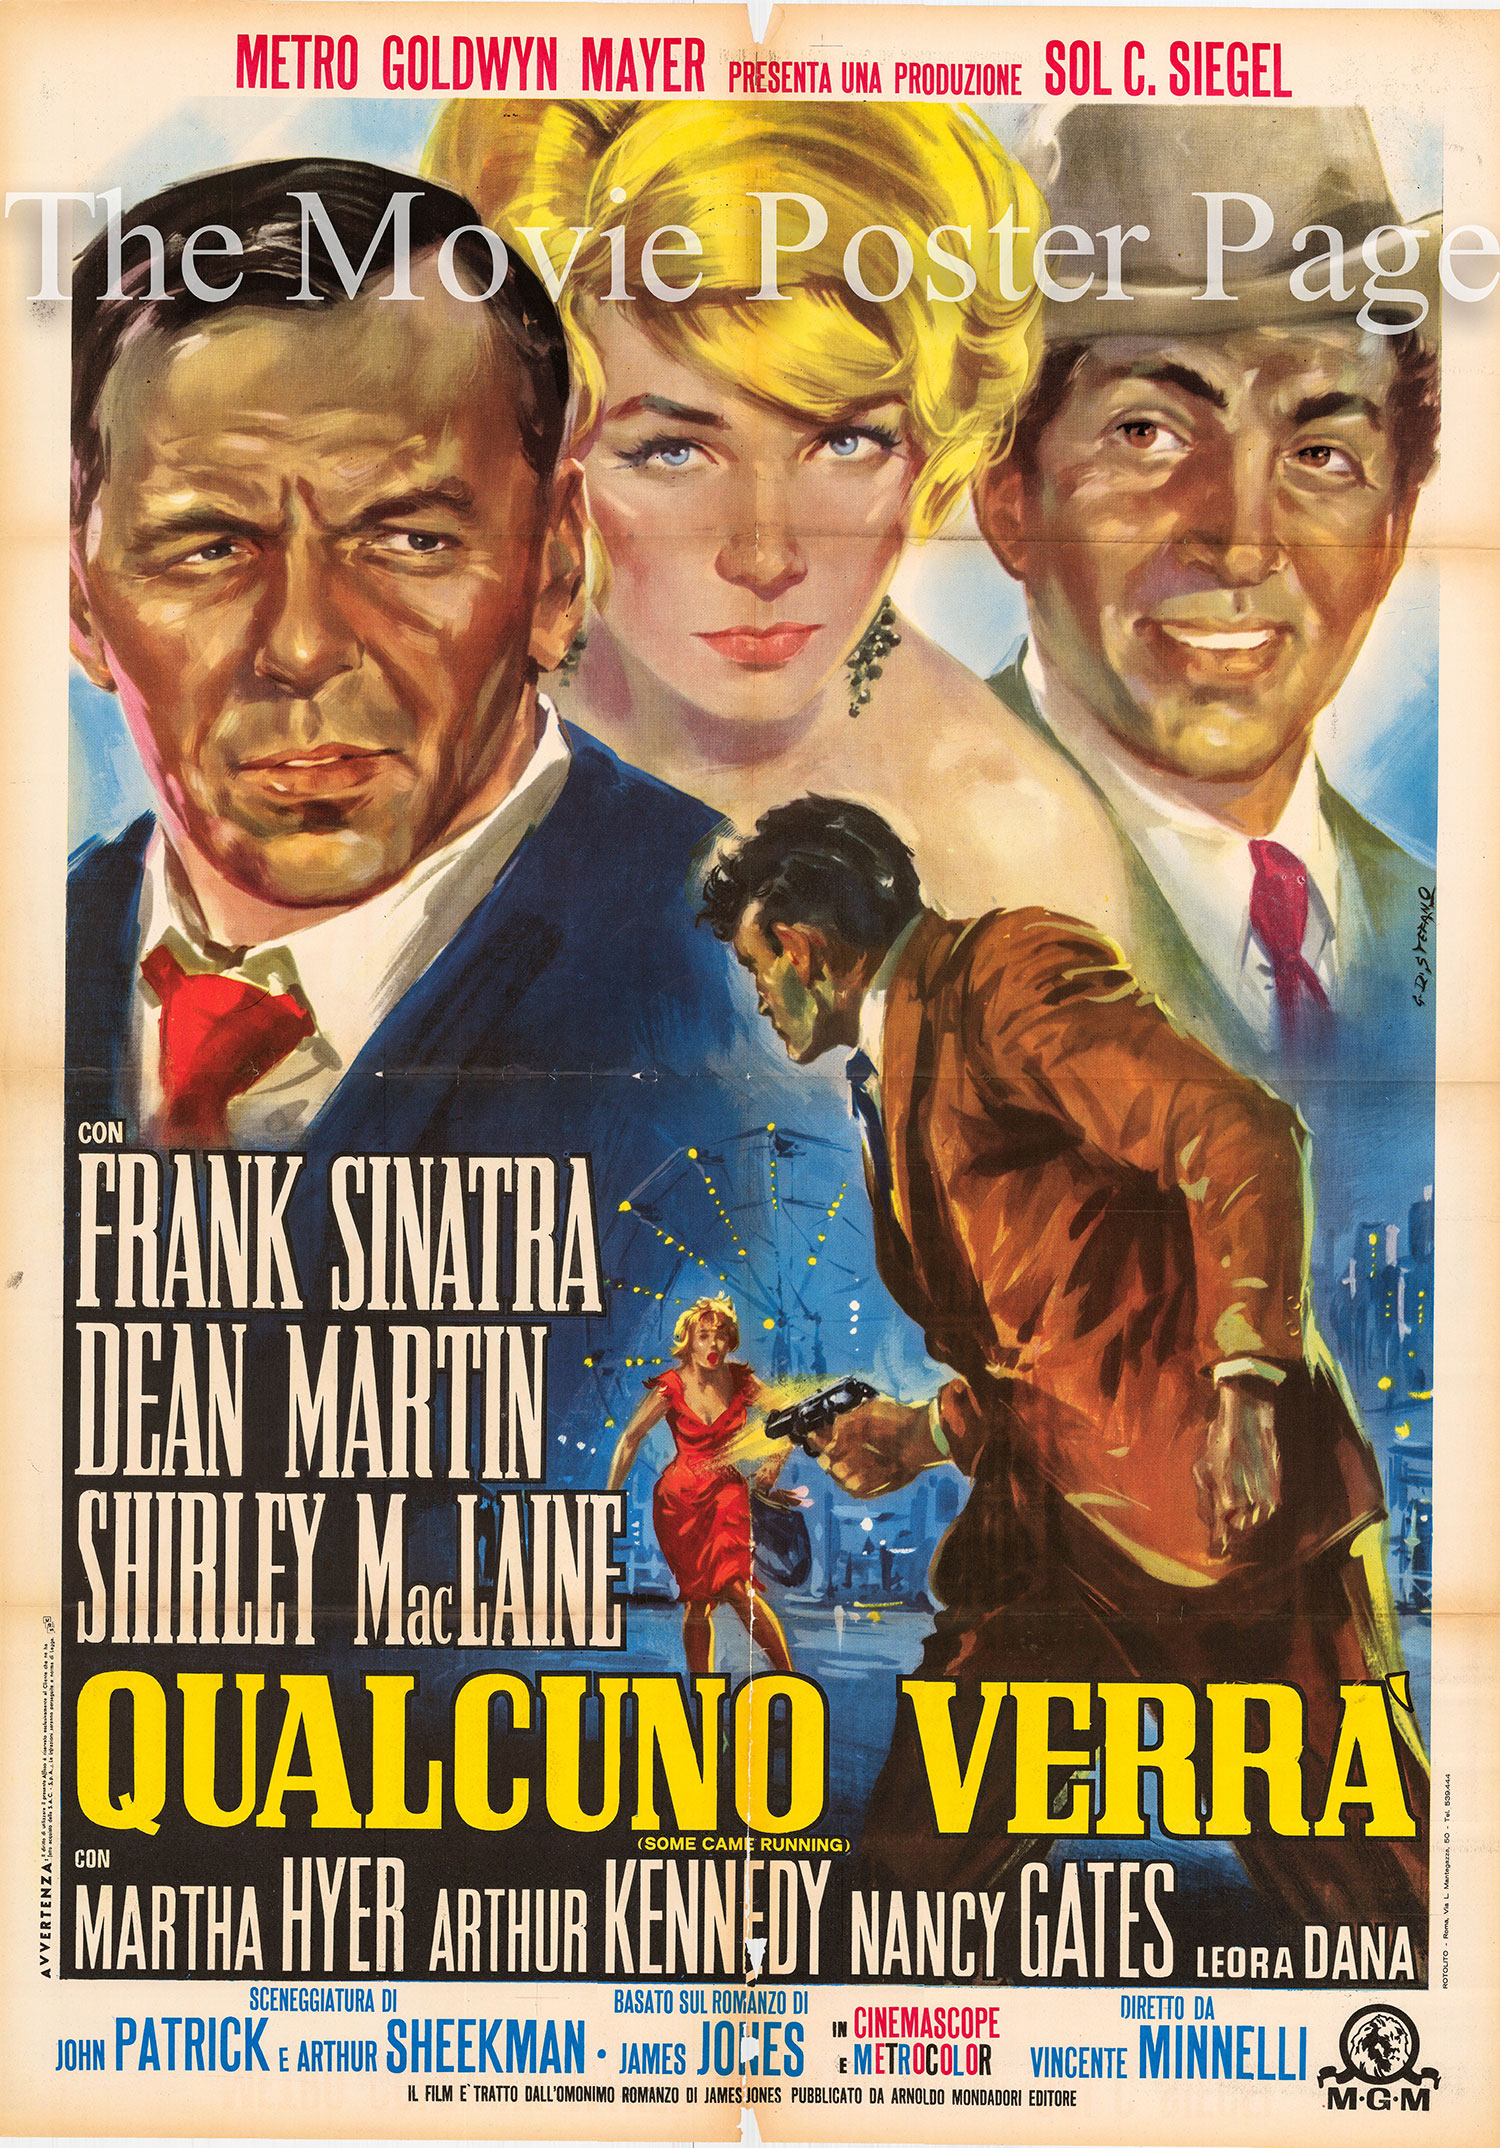 Pictured is an Italian two-sheet promotional poster for the 1958 Vincente Minnelli film <i>Some Came Running</i> starring Frank Sinatra.